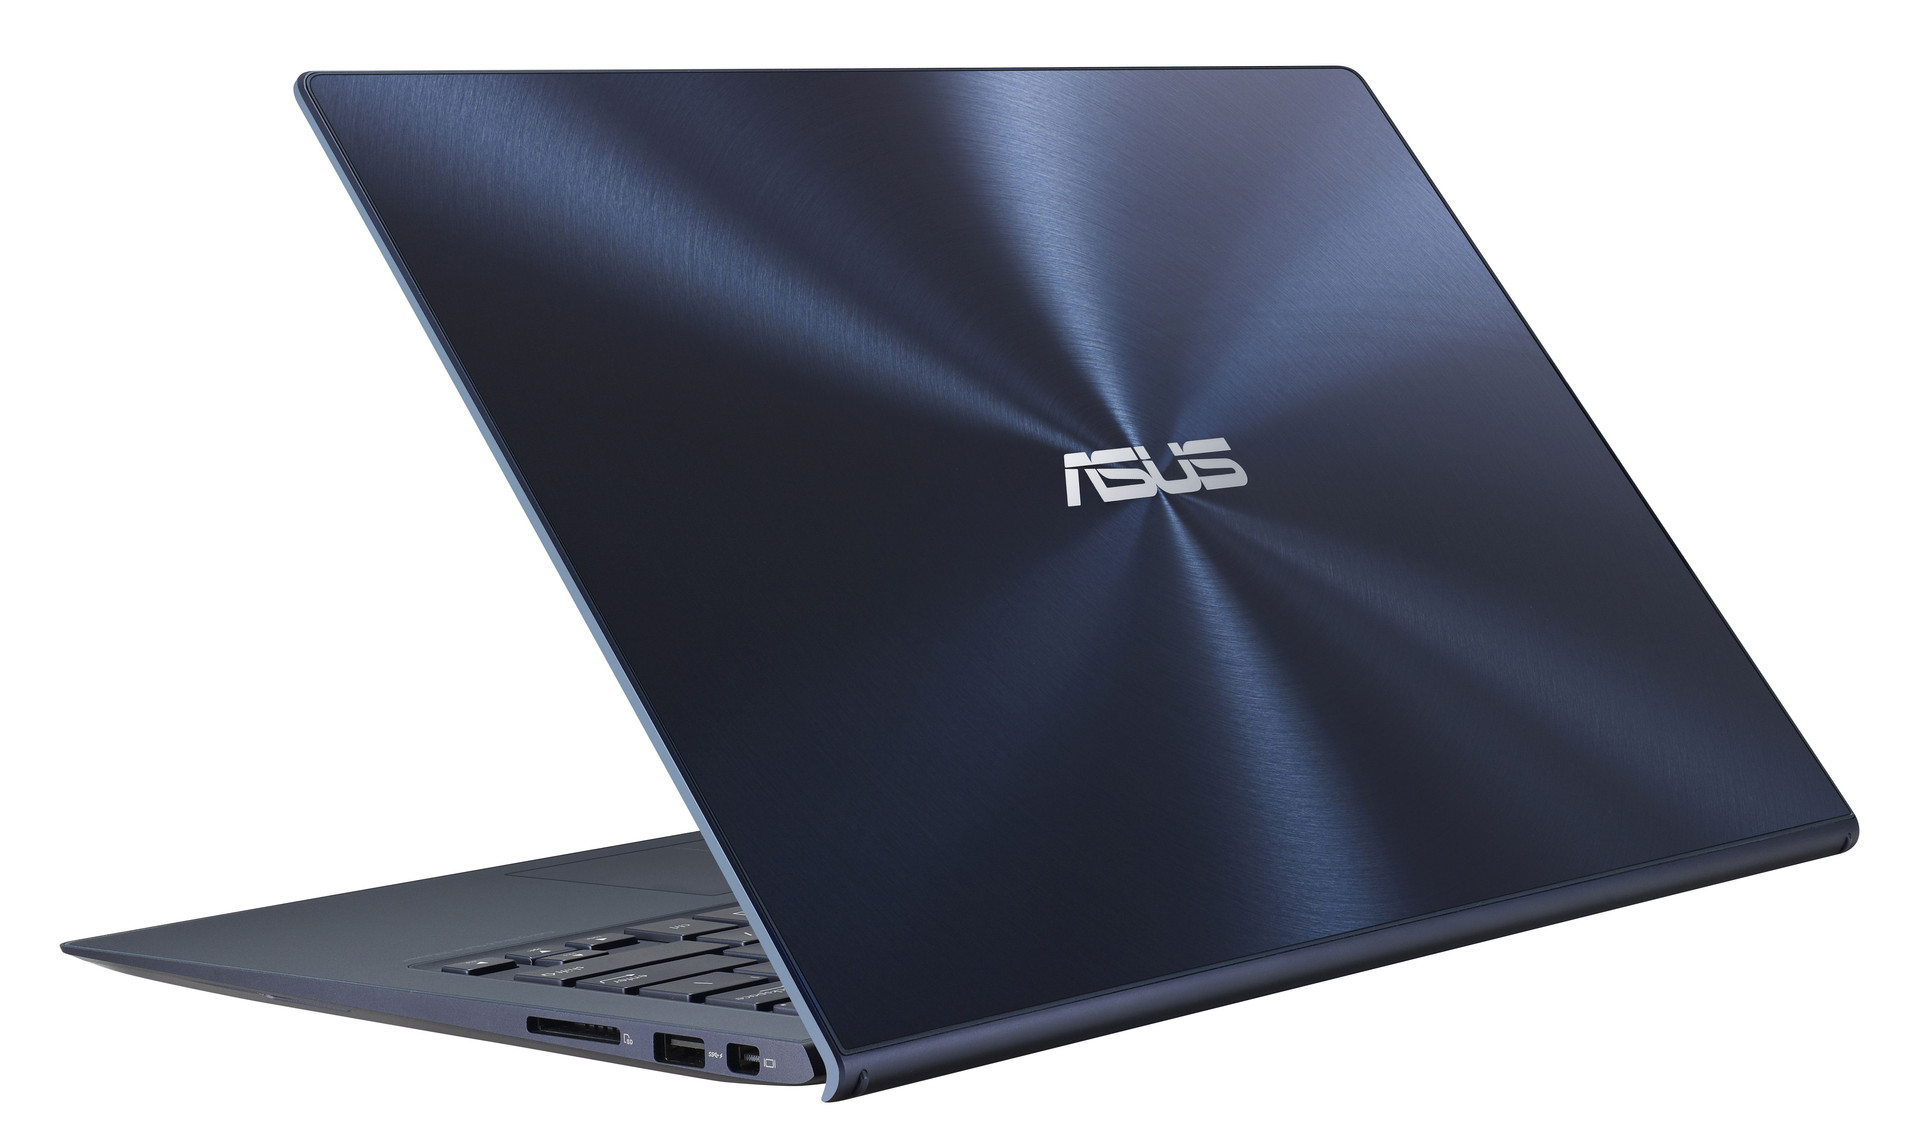 ASUS ZENBOOK UX302LA INTEL RST WINDOWS 7 DRIVER DOWNLOAD